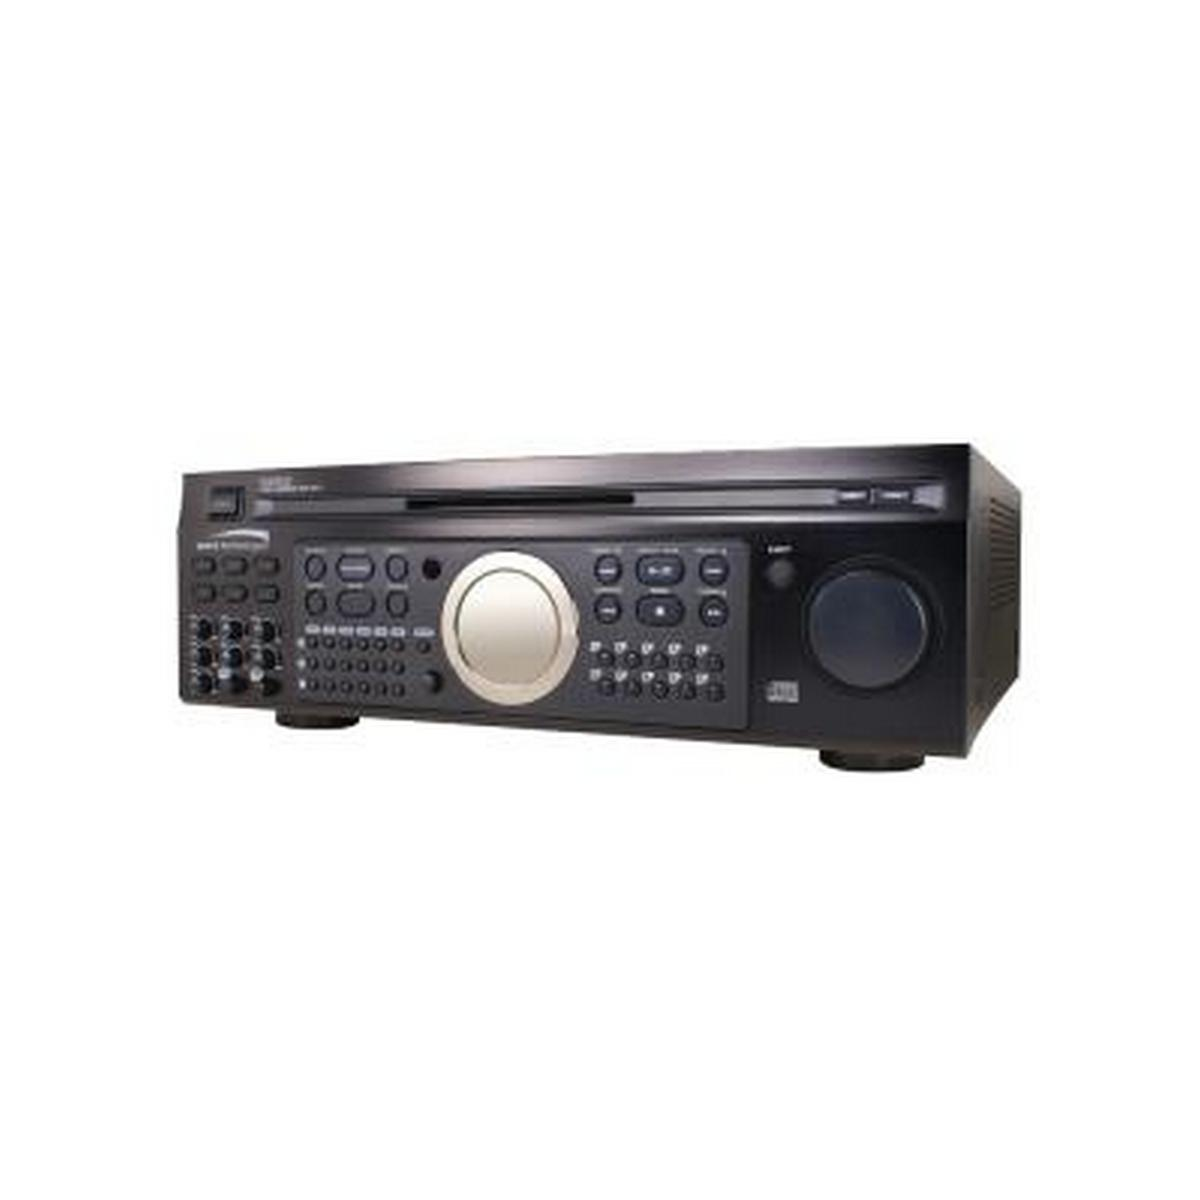 Speco P120FACD 120W PA Amplifier with FM Tuner & CD Player